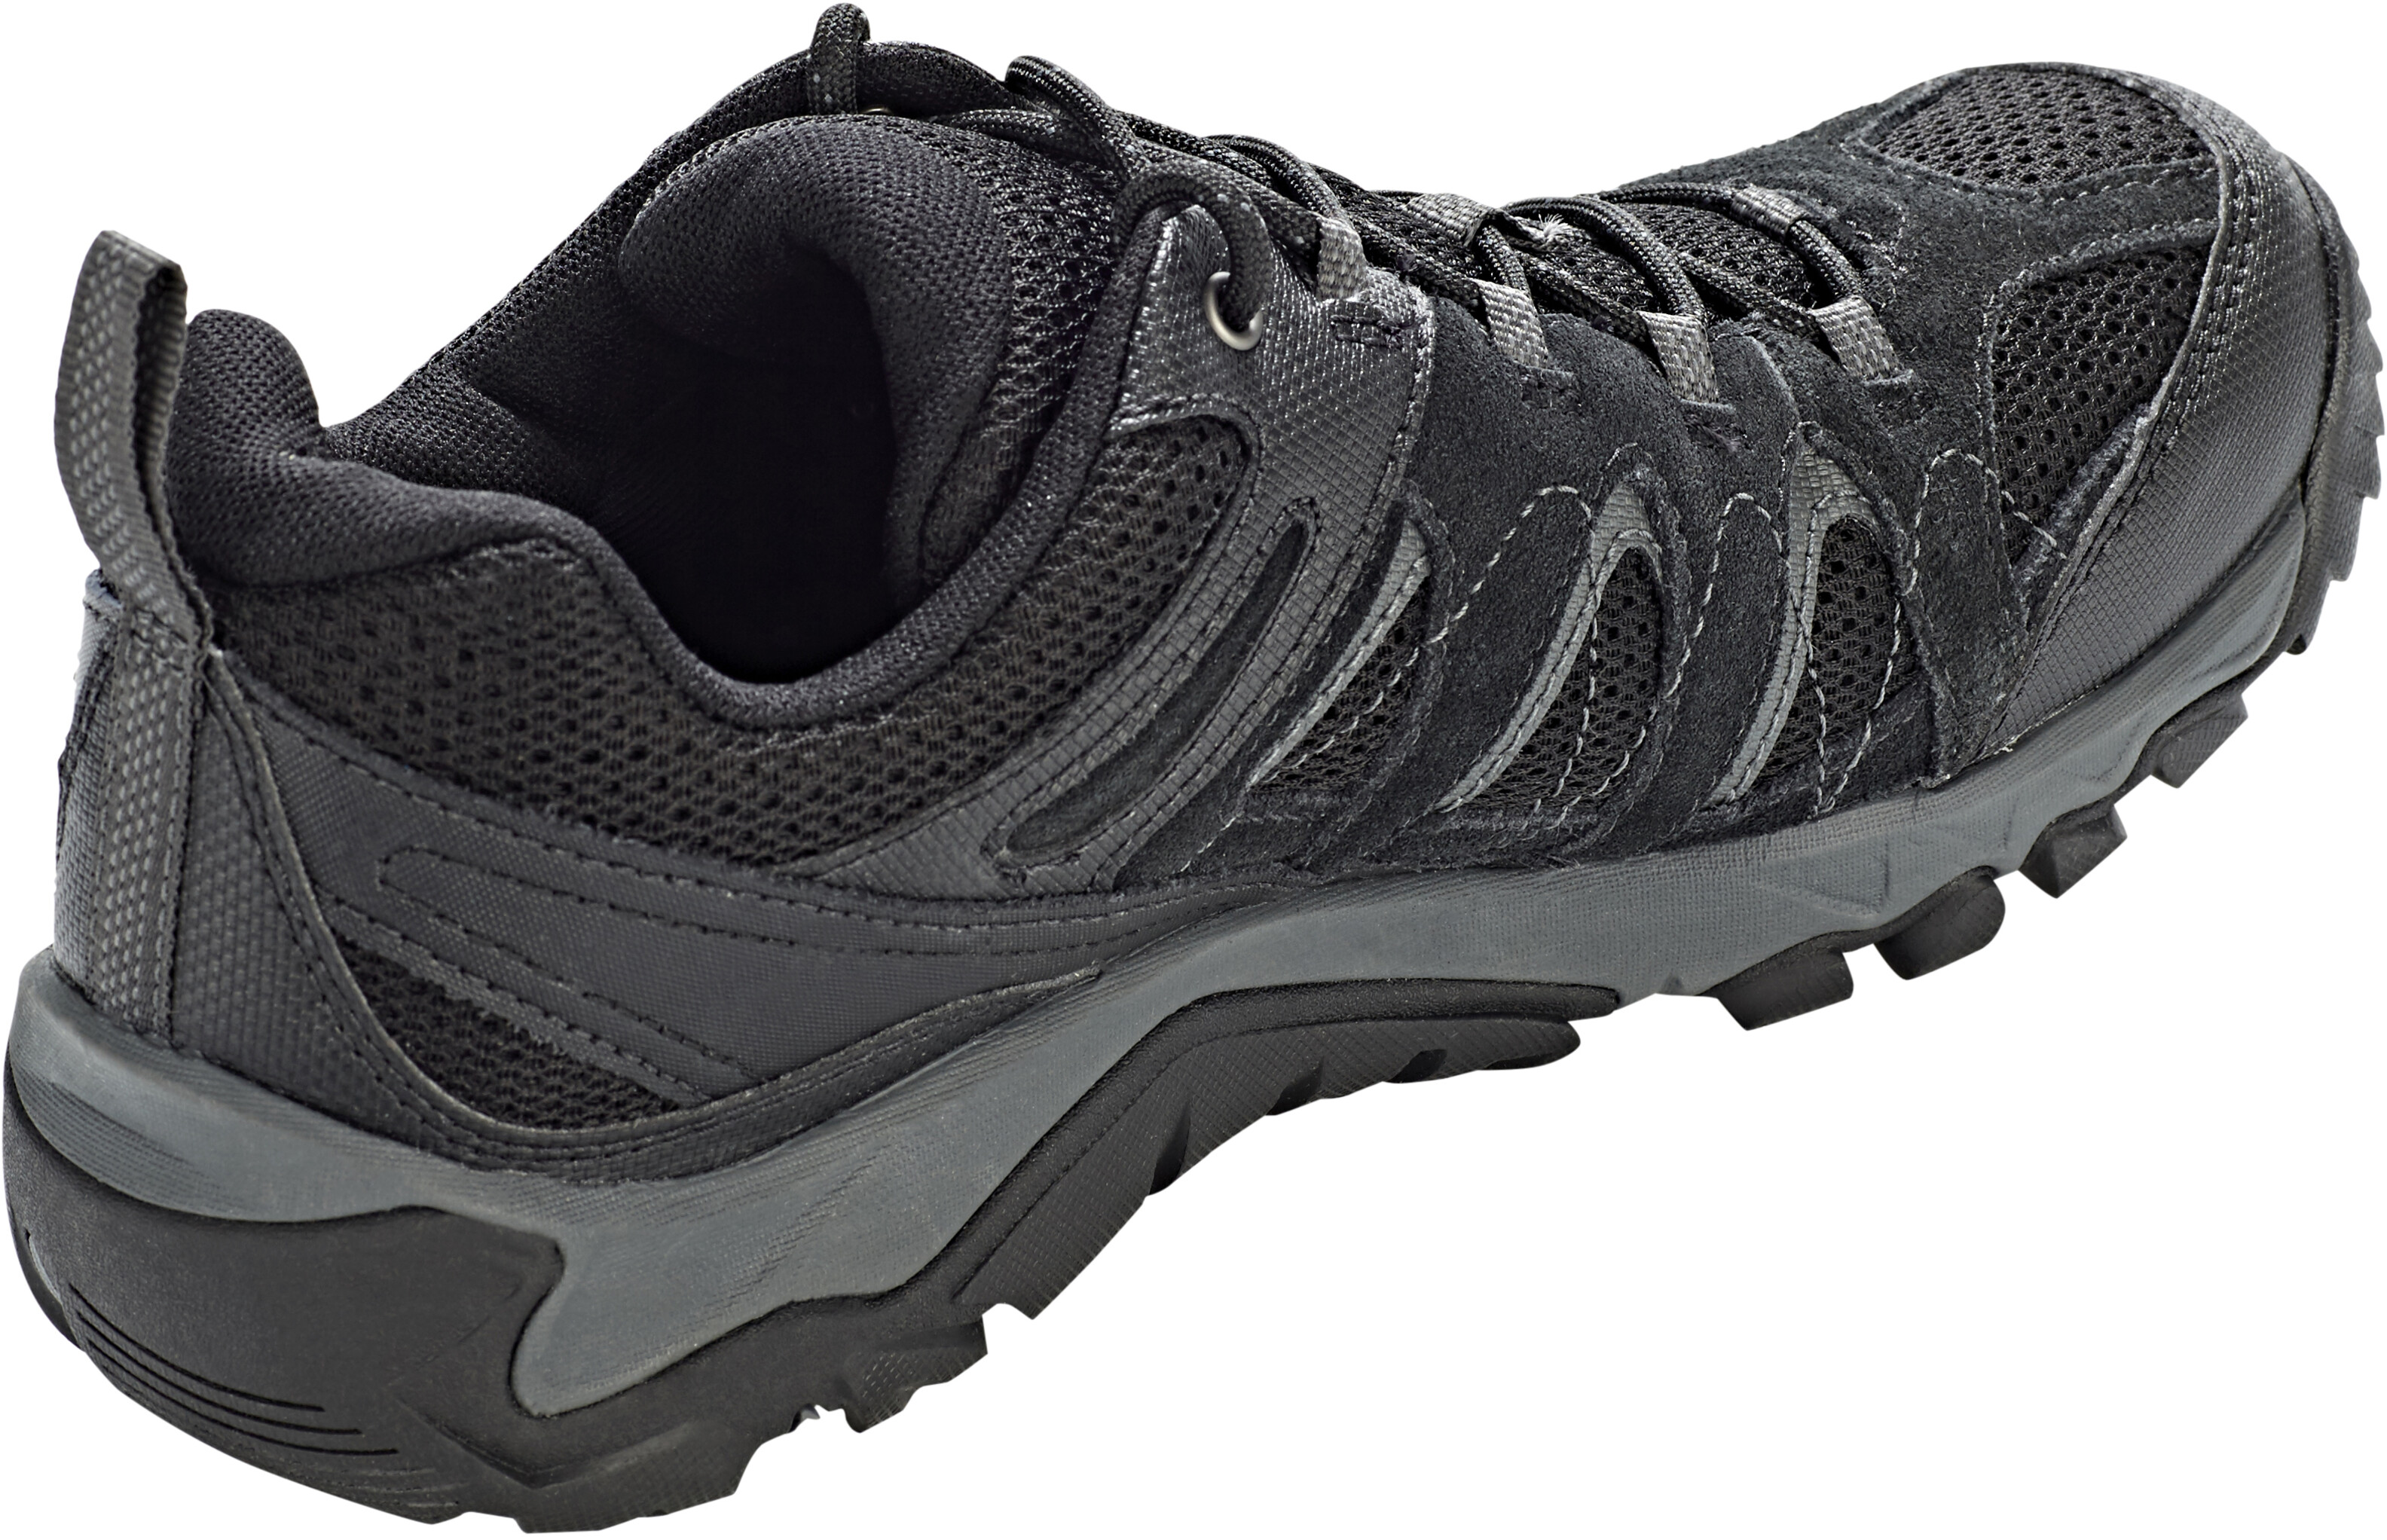 Merrell Outmost Vent GTX Shoes Men black at Addnature.co.uk 9e07be0f5f